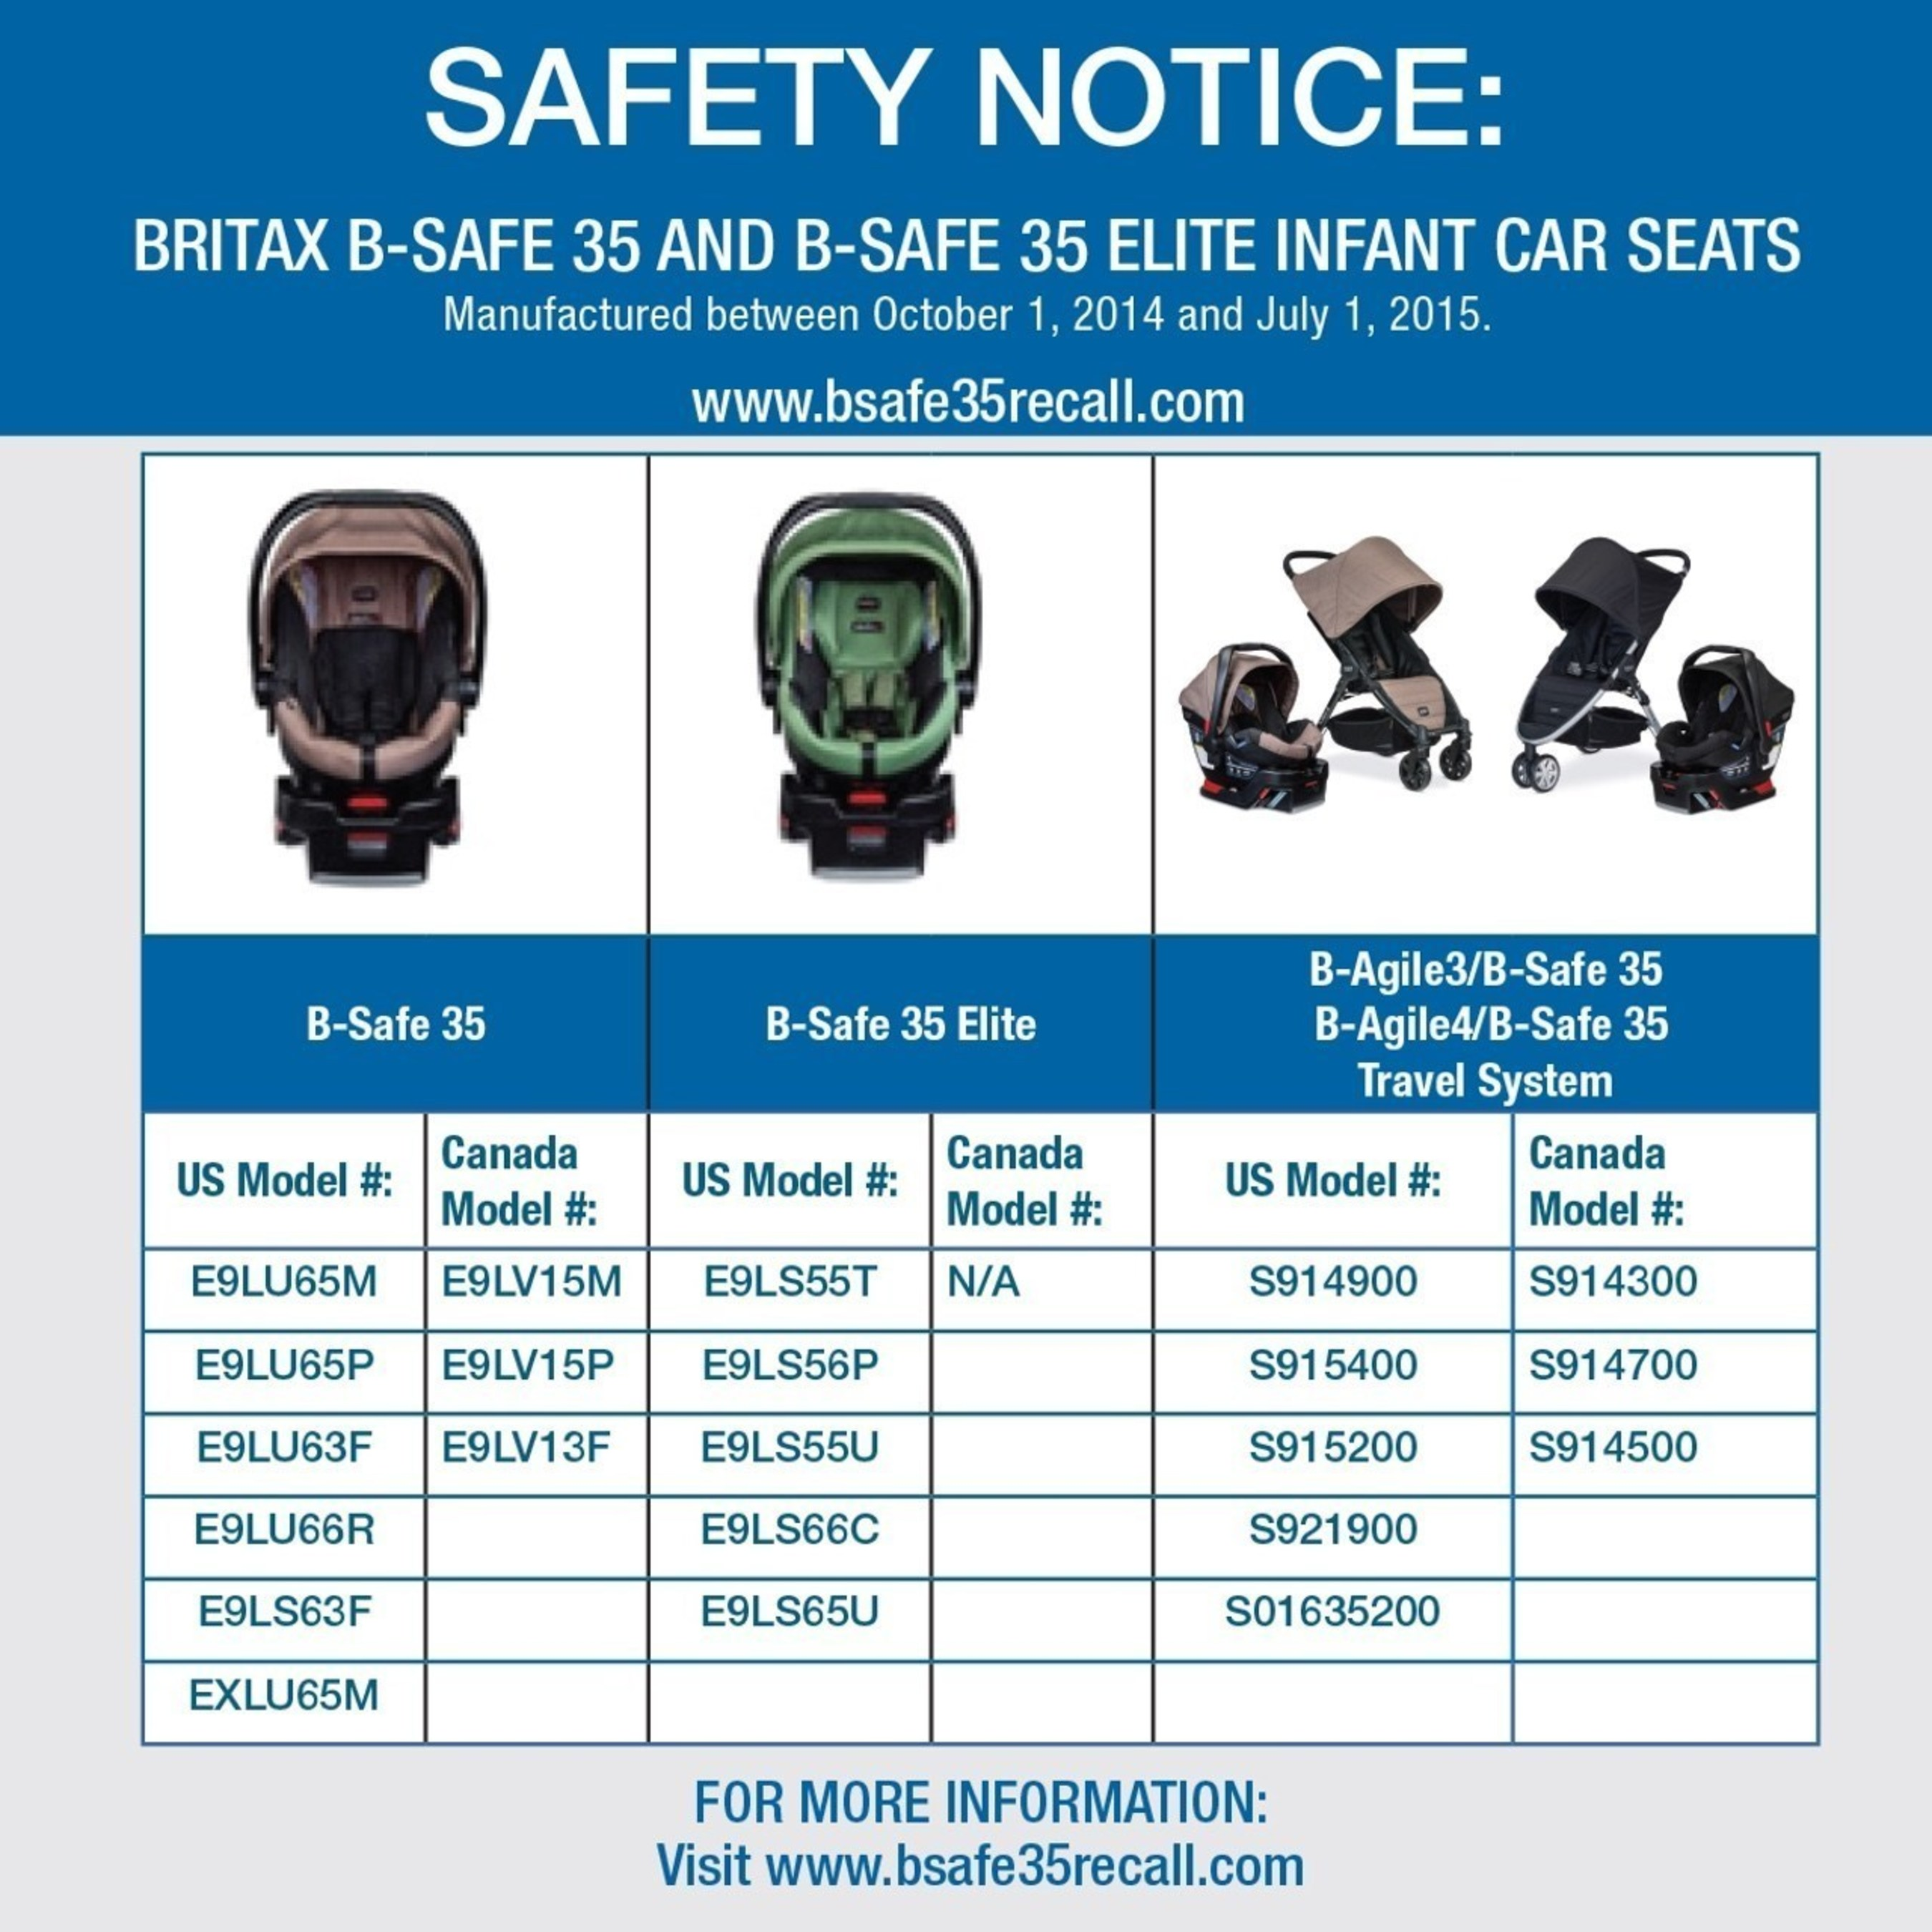 B Safe 35 And Elite Infant Car Seat Models